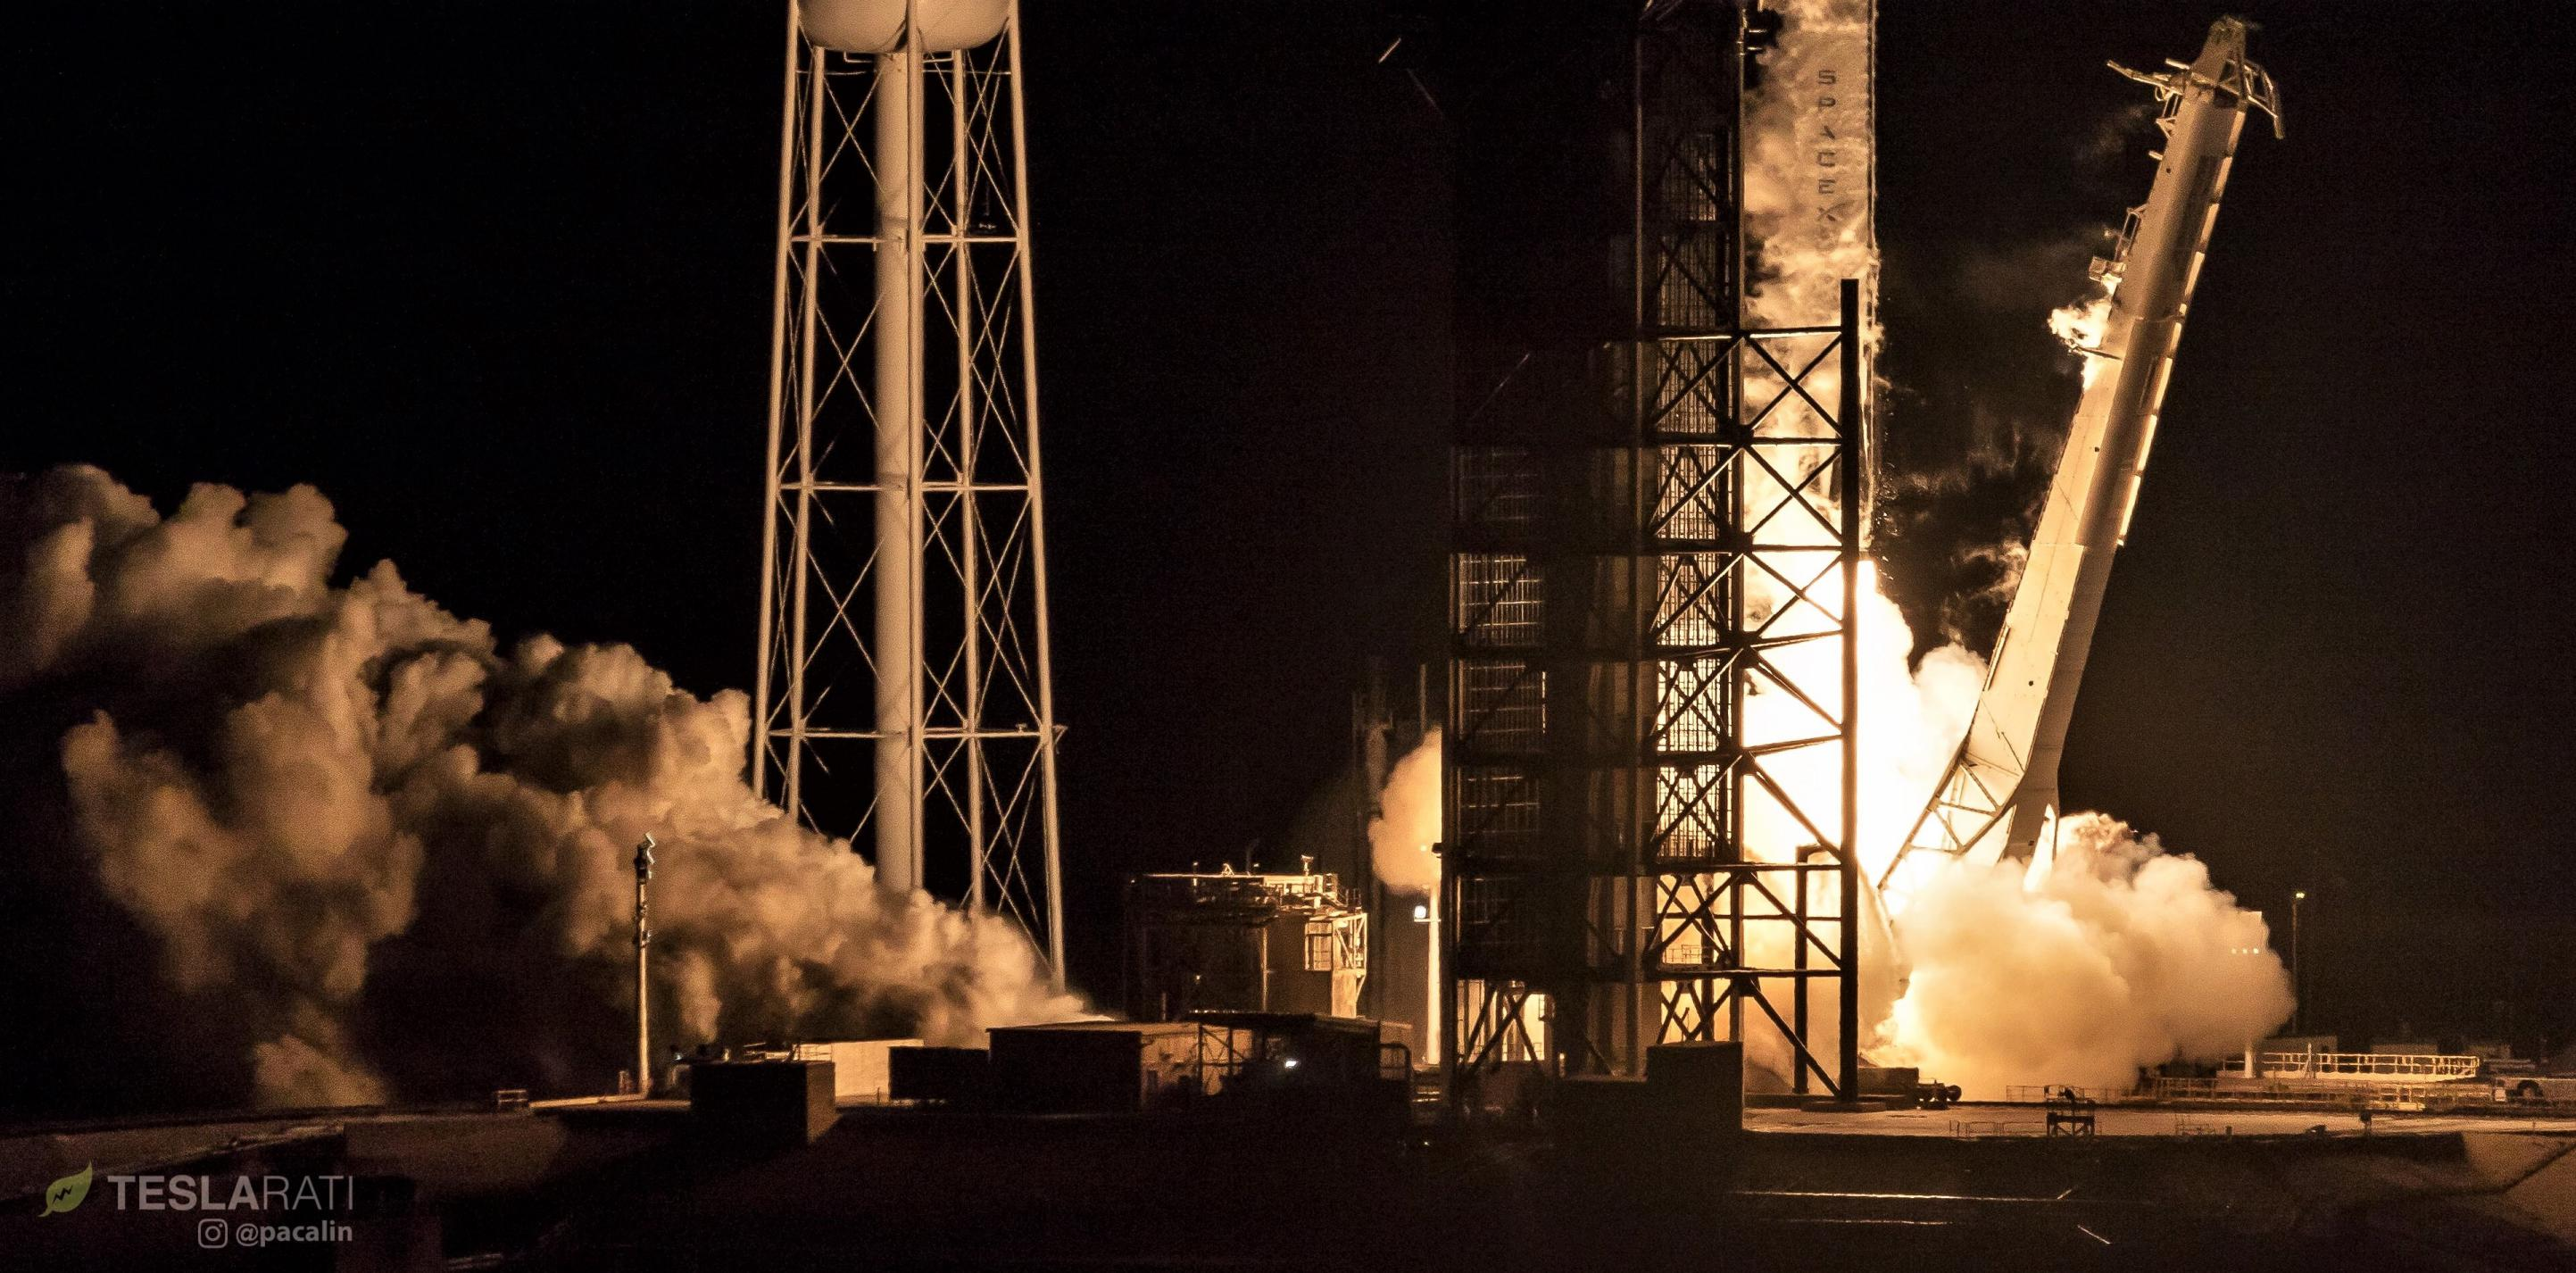 Crew Dragon Falcon 9 B1051 DM-1 liftoff 030219 (Pauline Acalin) 1 crop (c)